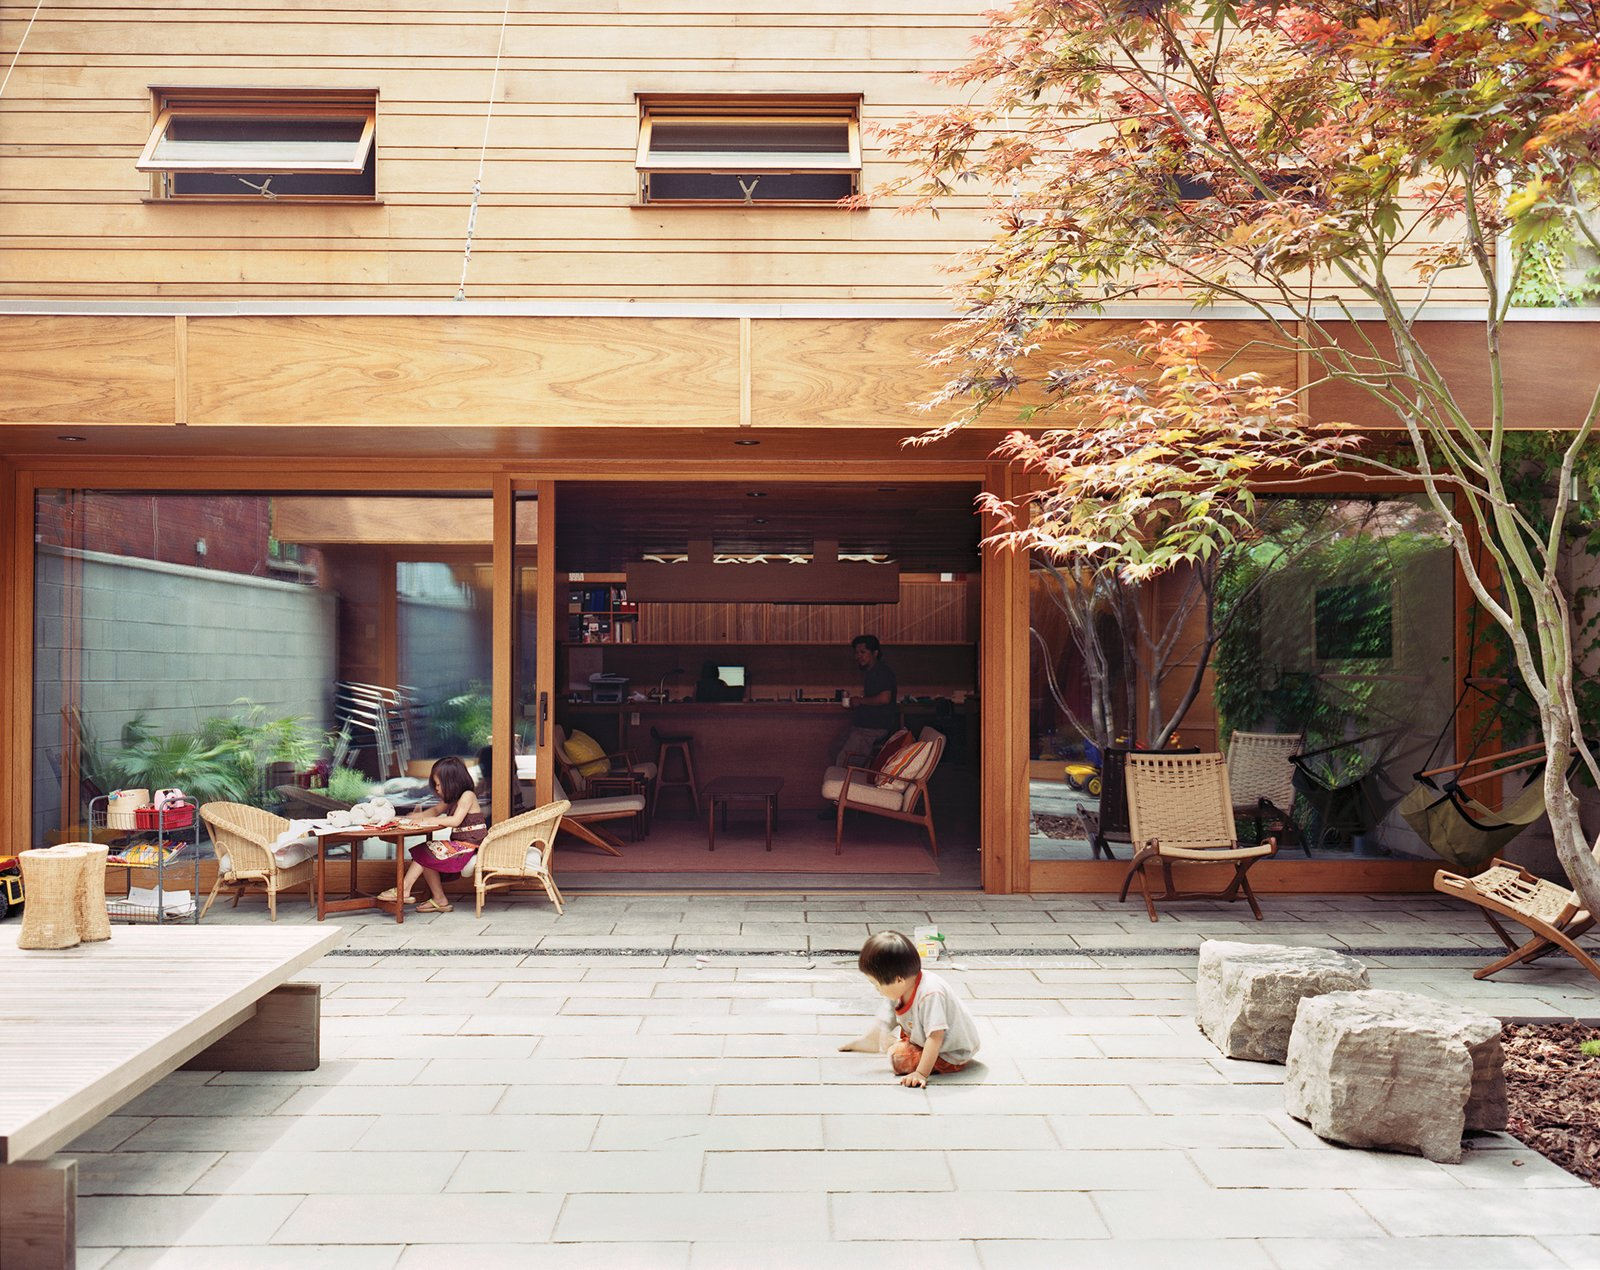 Photo 1 of 11 in These Courtyards Bring Indoor/Outdoor Living to 10 Modern Homes